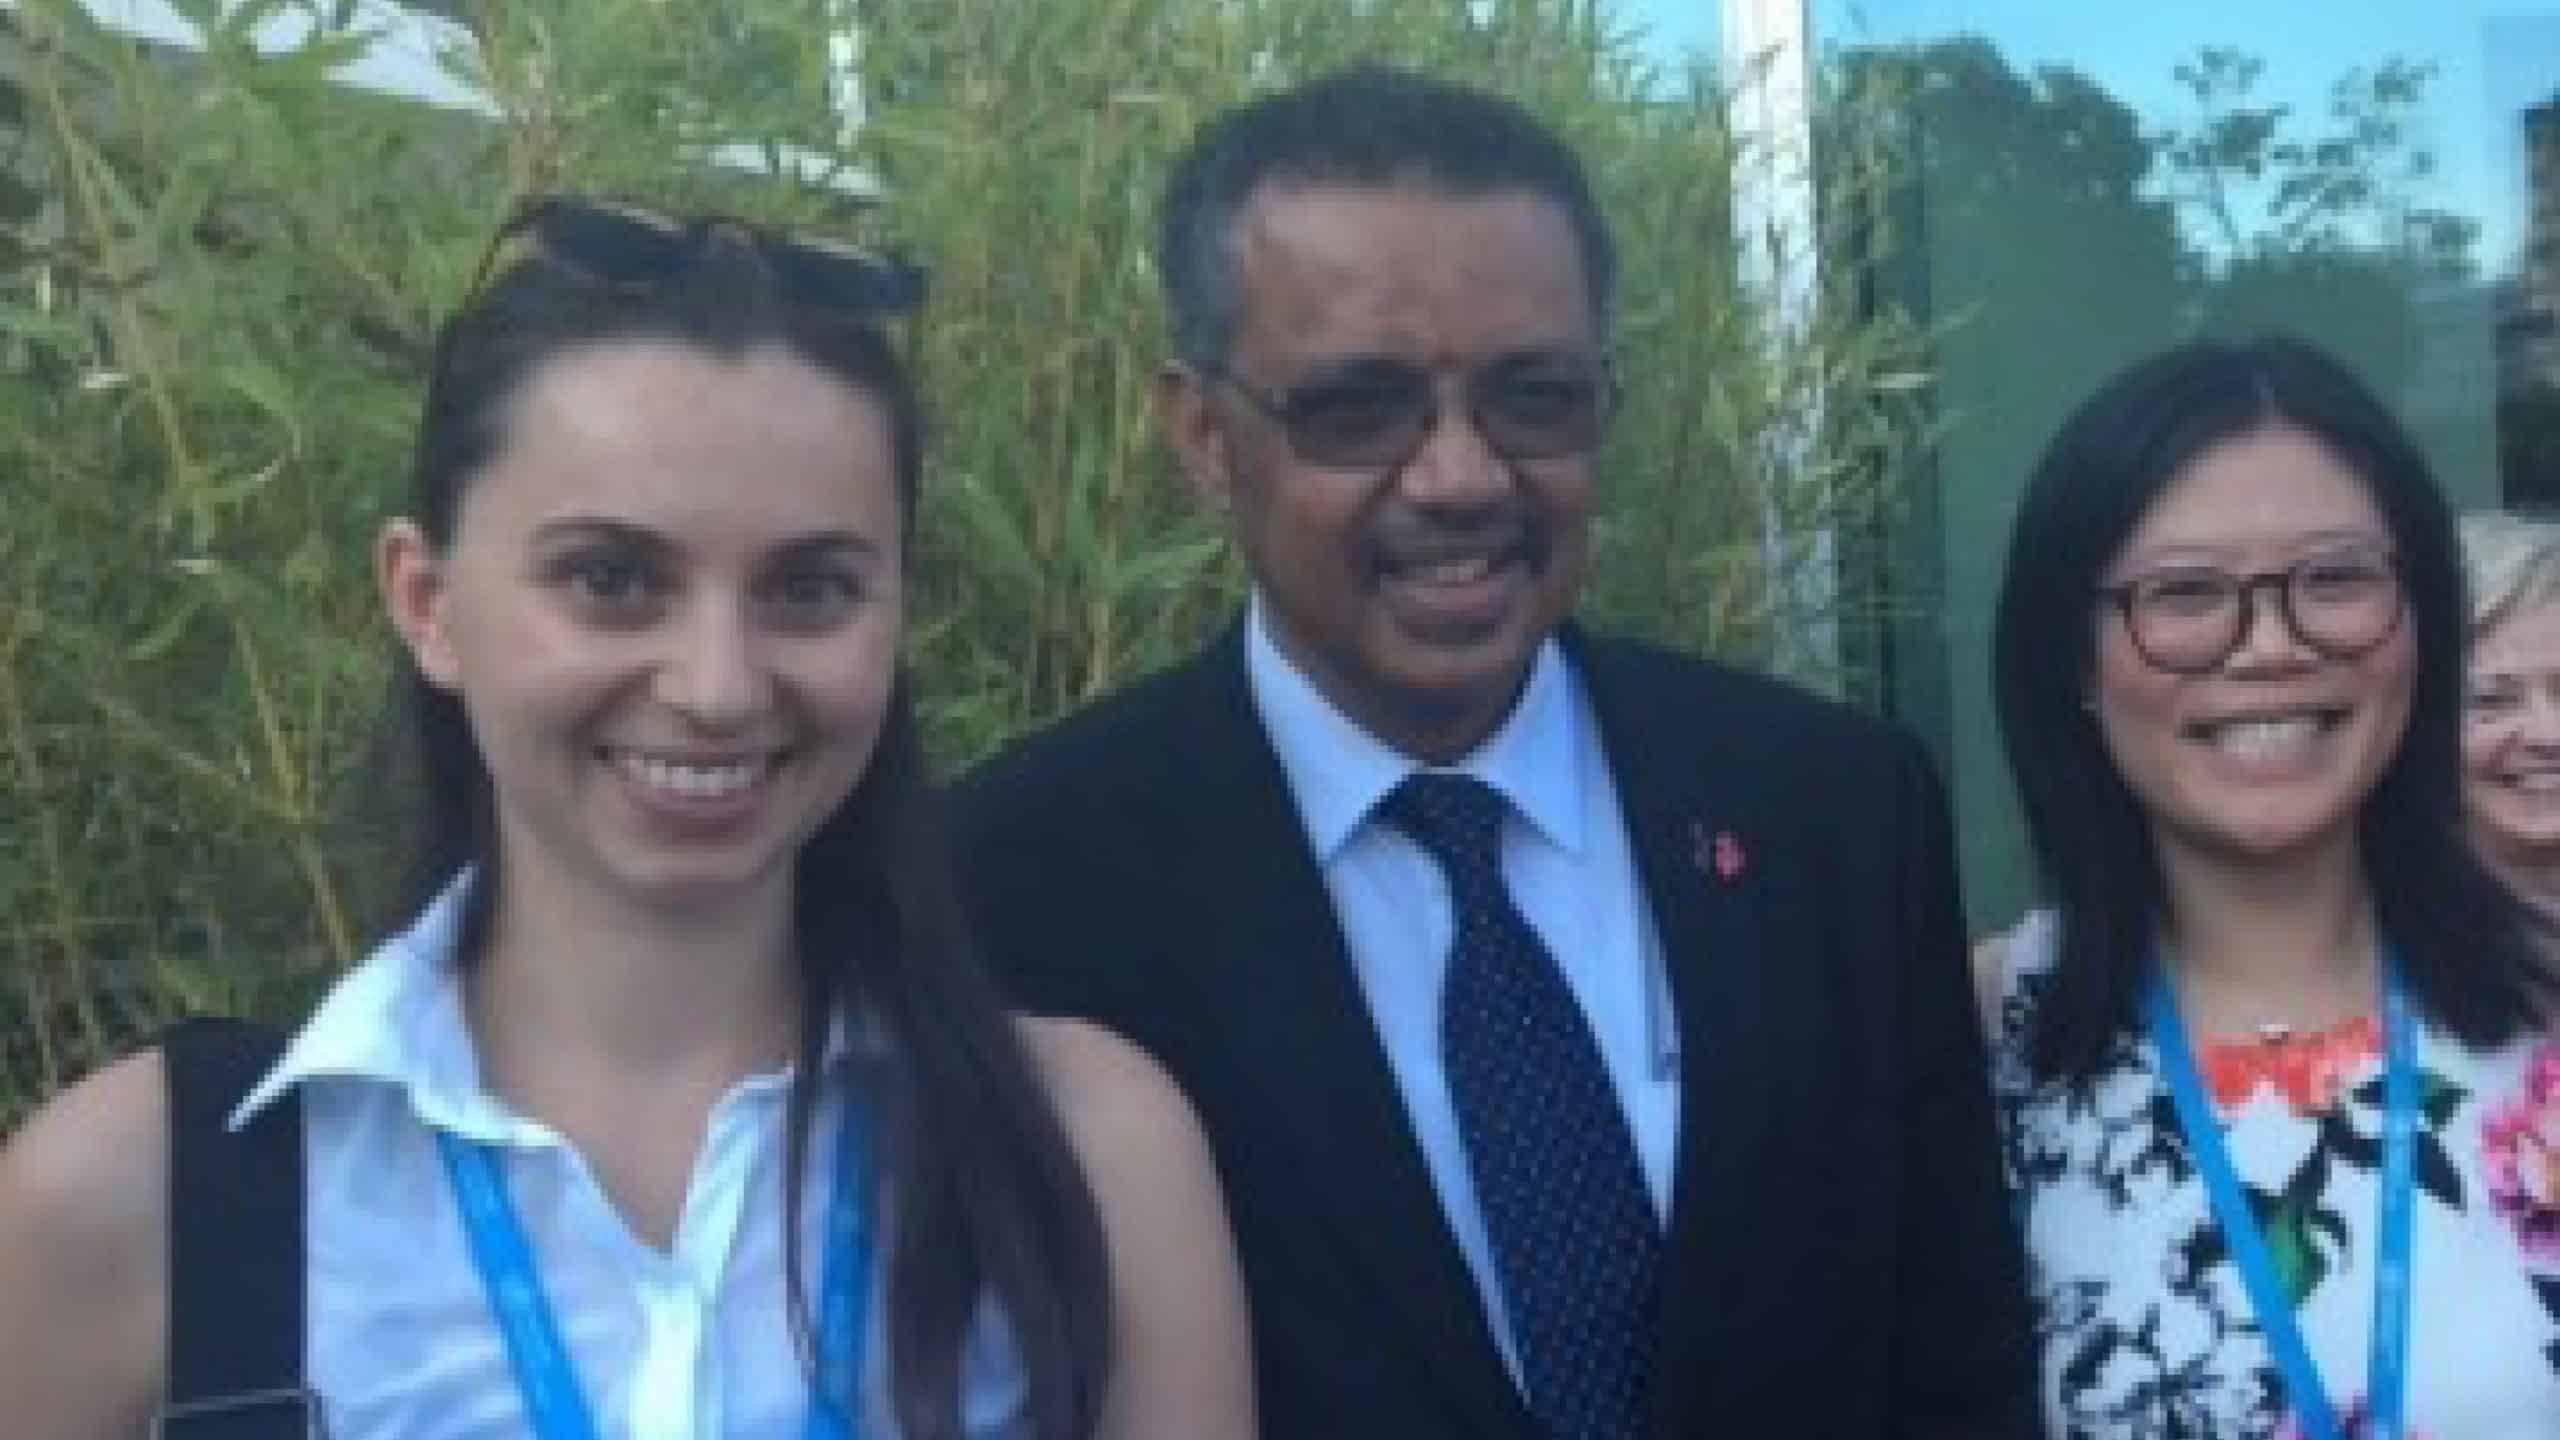 Drs Carmen Hagen (Switzerland) at left and Natalie Yap (Australia) with WHO Director-General Dr Tedros Adhanom.